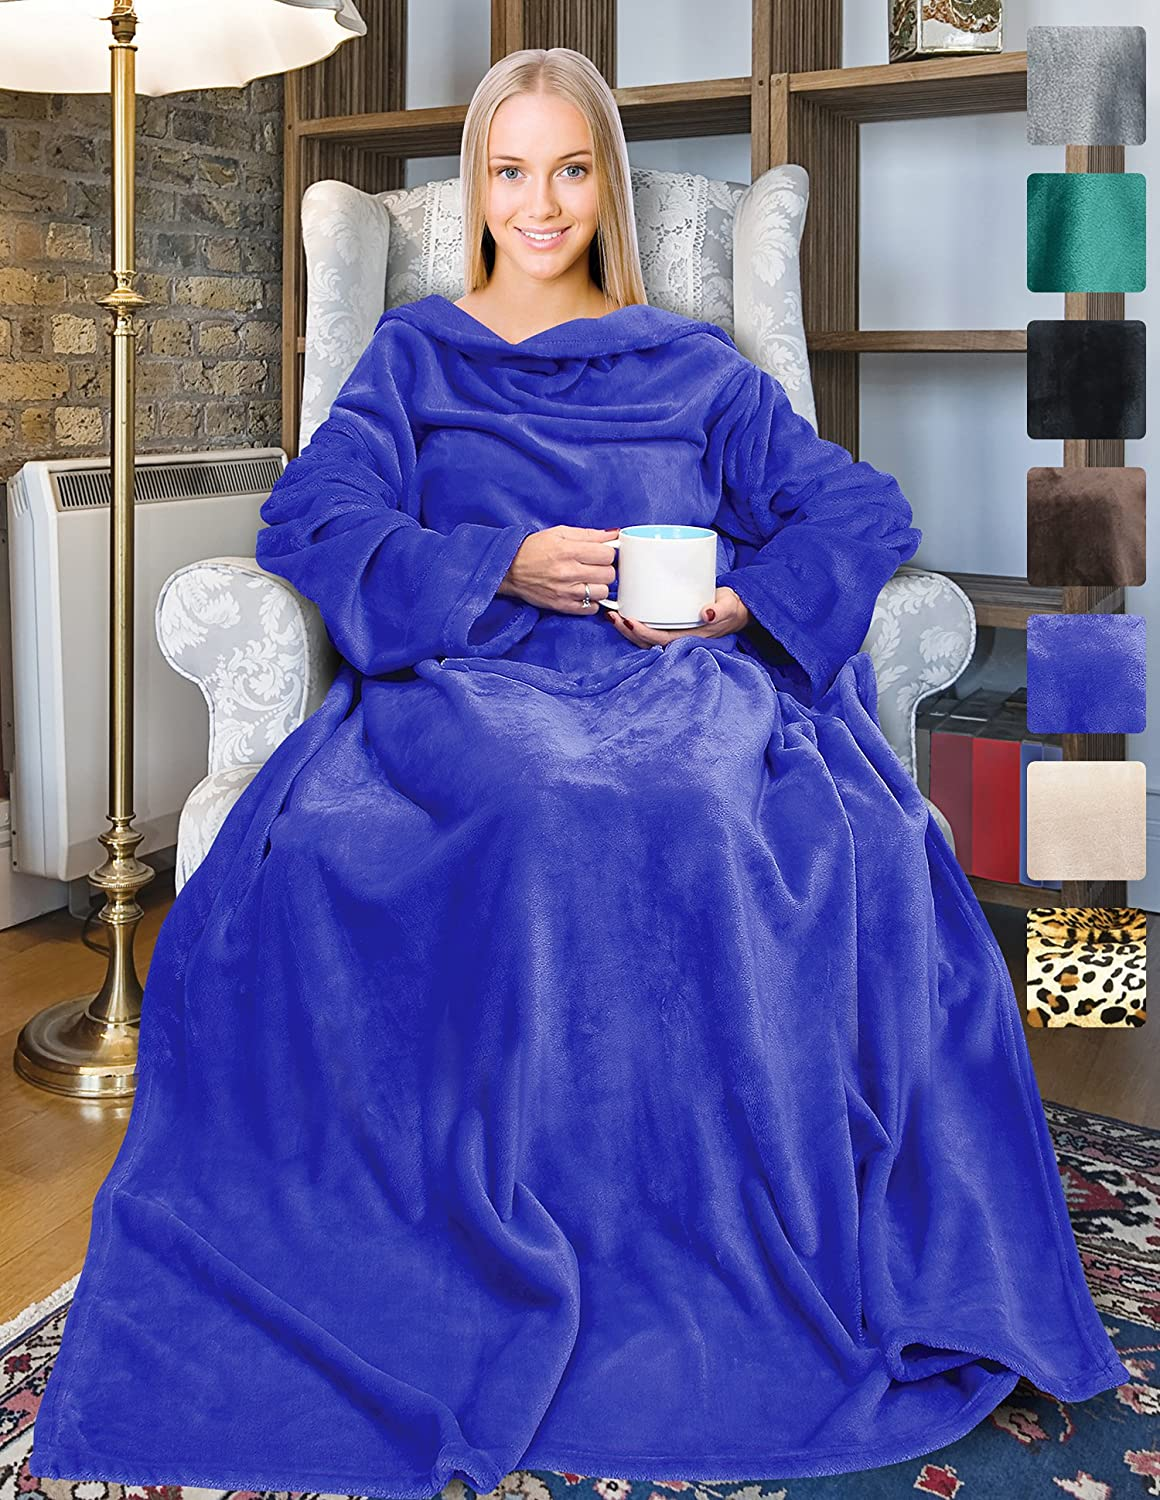 """Wearable Fleece Blanket with Sleeves for Adult Women Men, Super Soft Comfy Plush TV Blanket Throw Wrap Cover for Lounge Couch Reading Watching TV 73"""" x 51"""" Blue"""